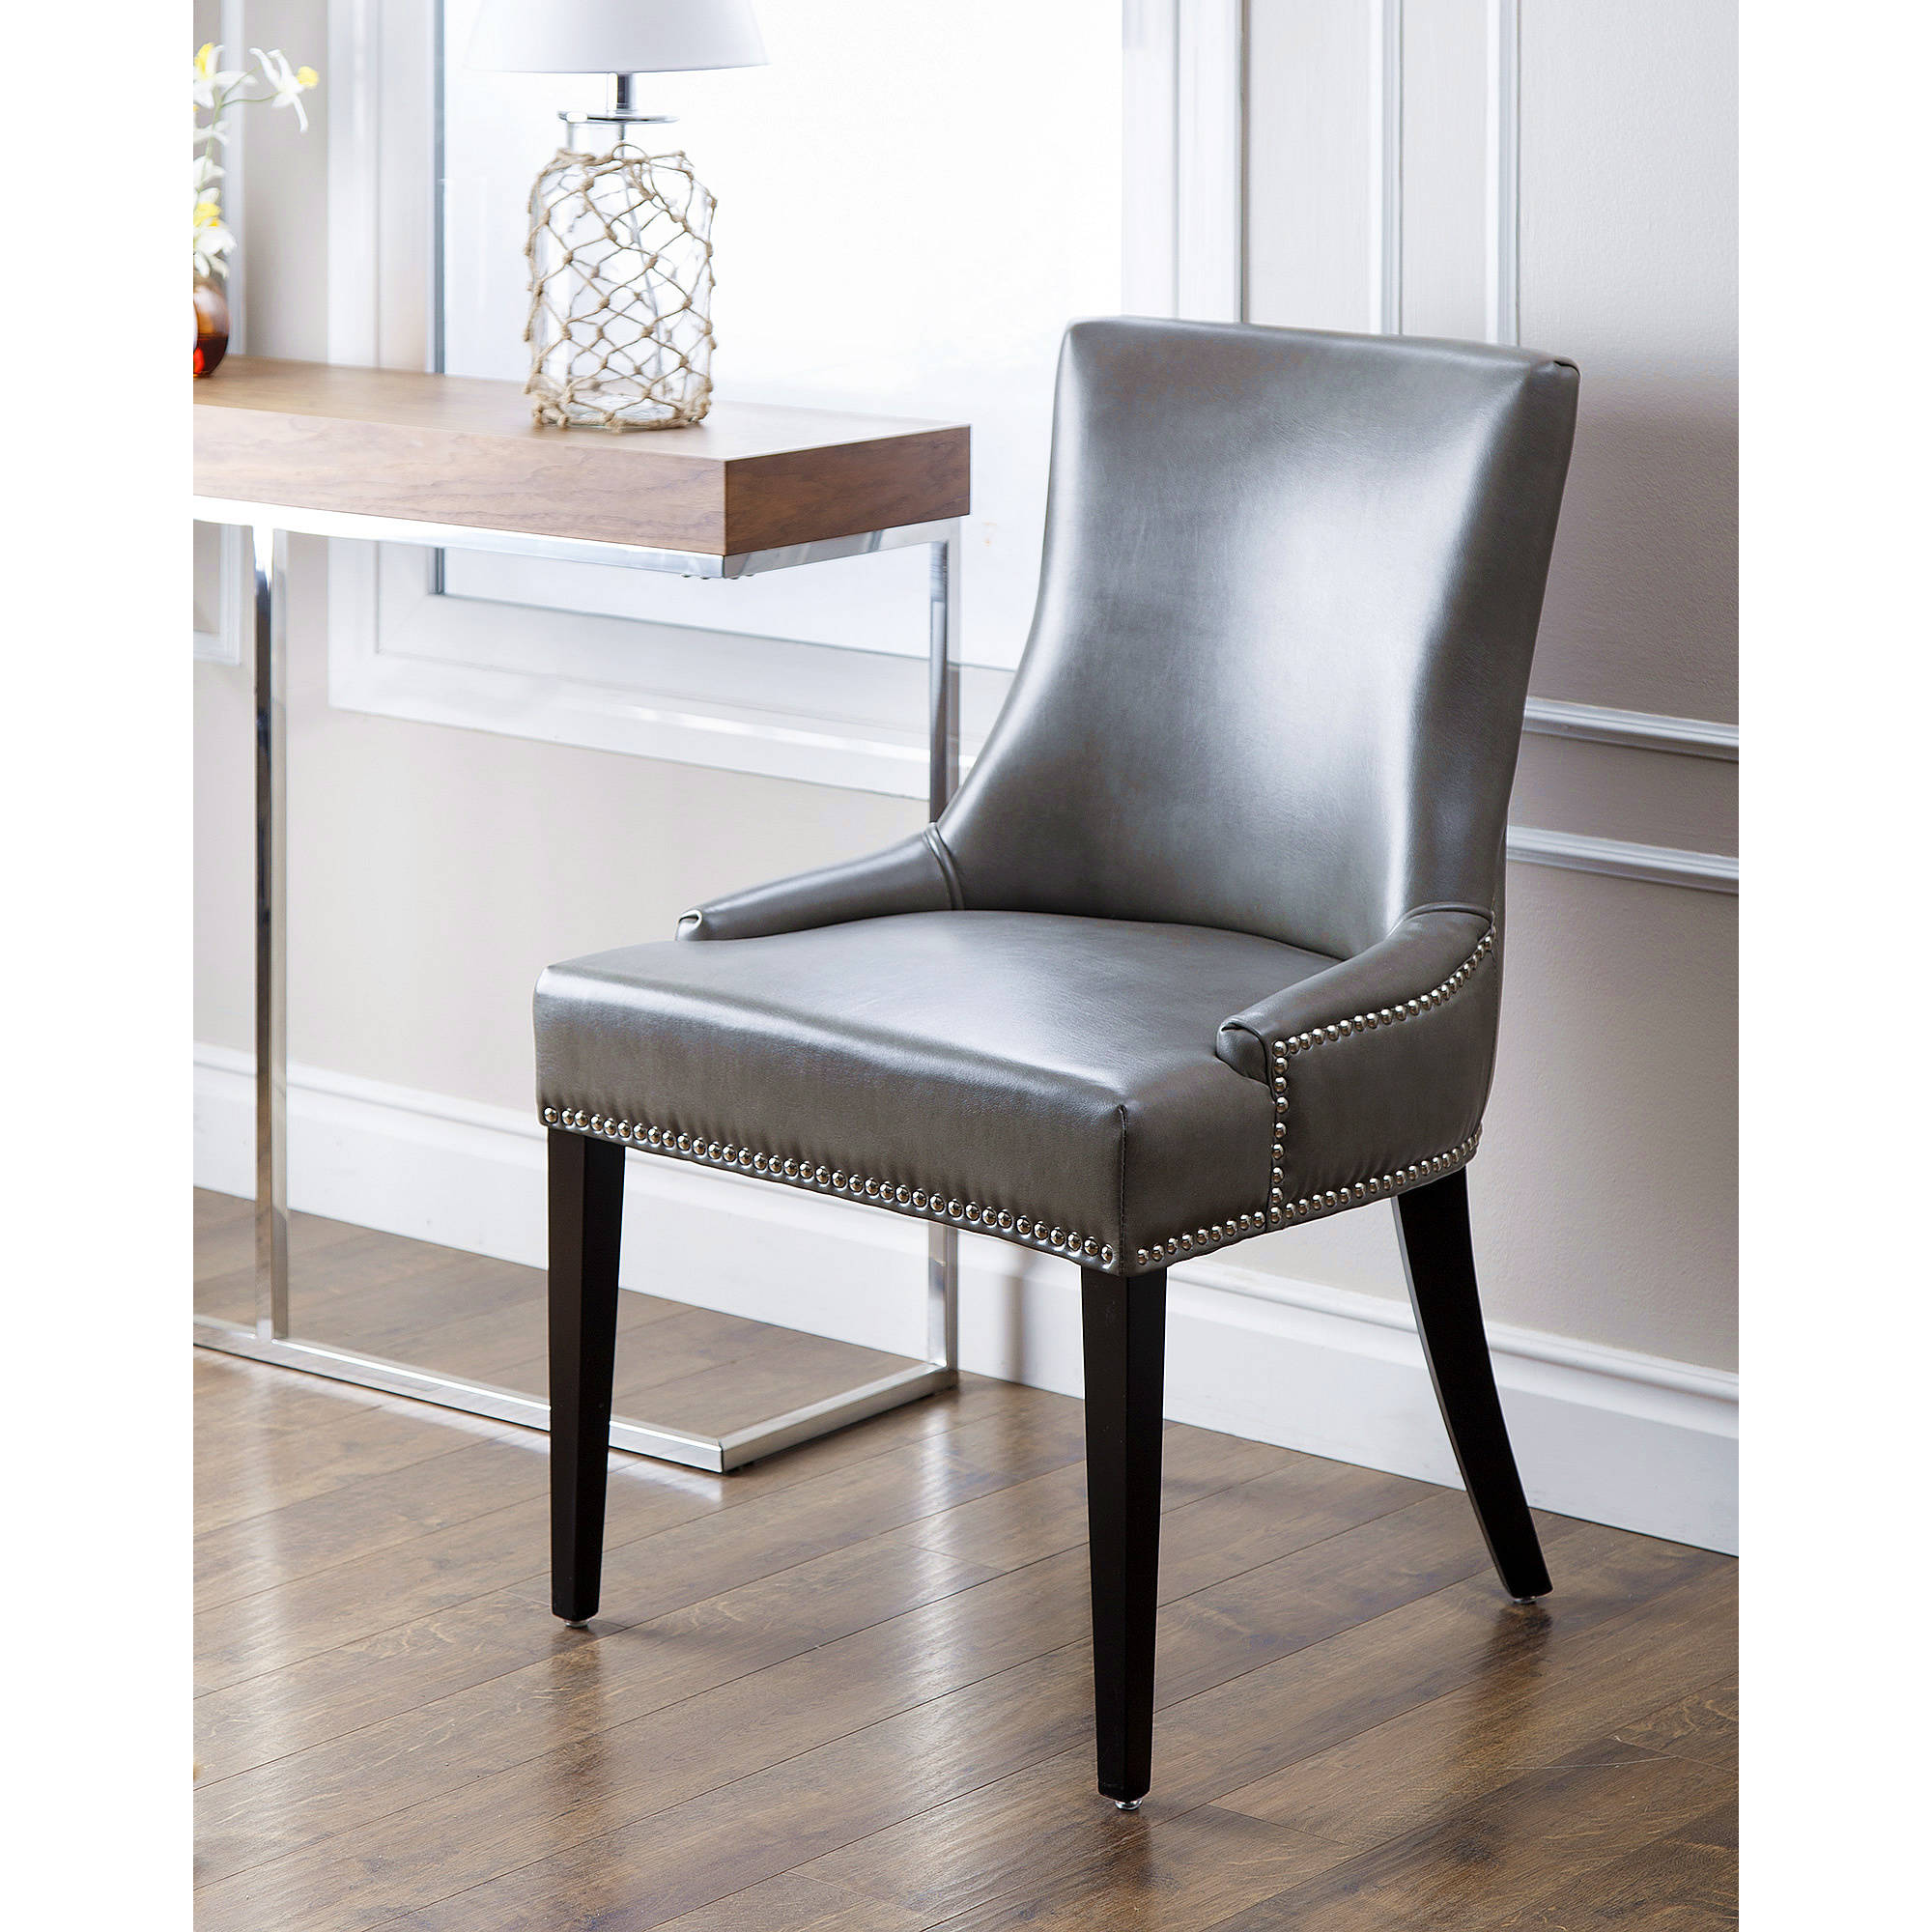 Merveilleux Devon U0026 Claire Laguna Leather Nailhead Trim Dining Chair, Grey